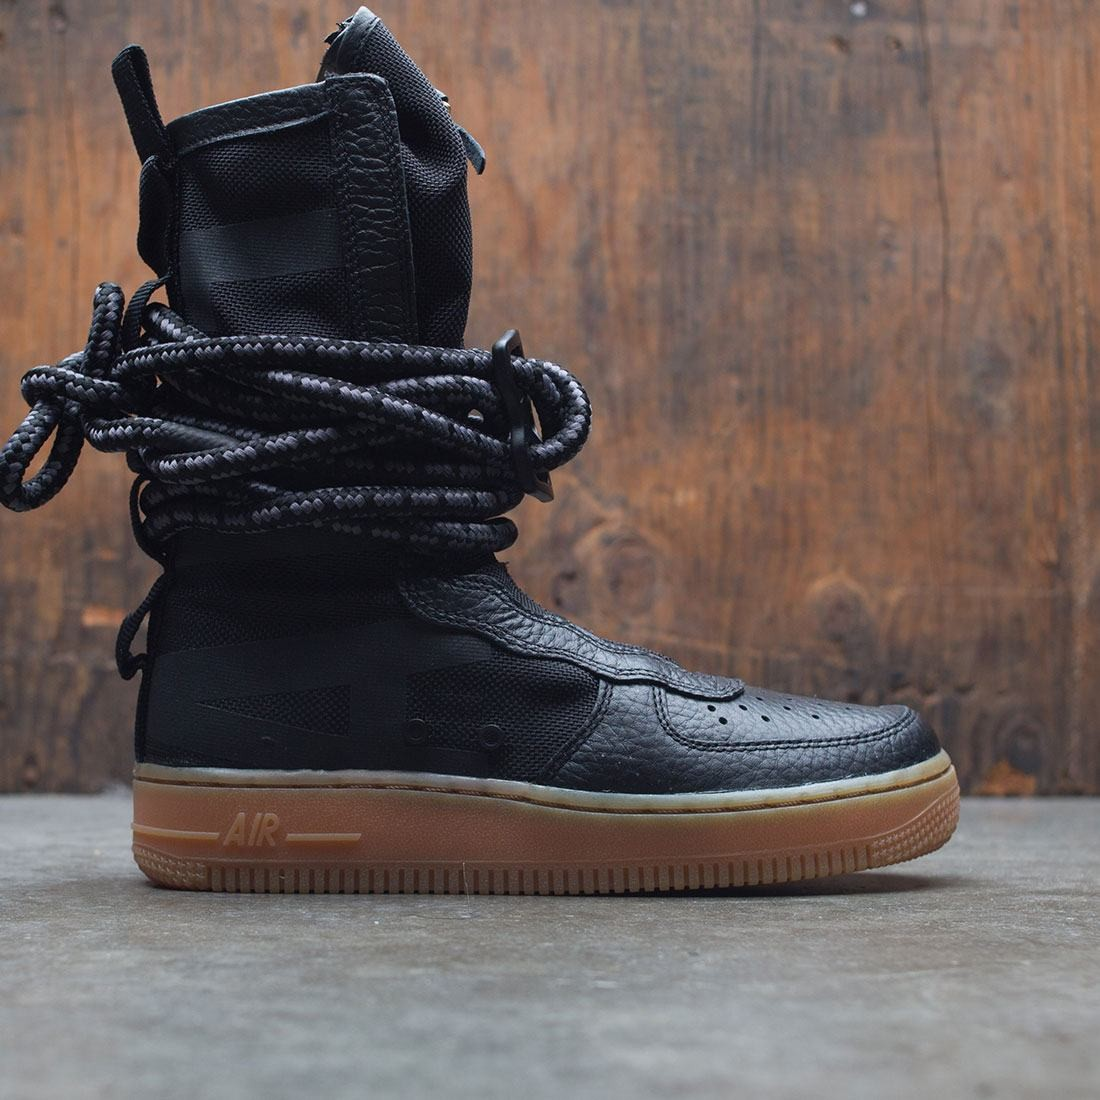 on sale 4e660 2d2ab nike women sf air force 1 hi boot black black gum light brown